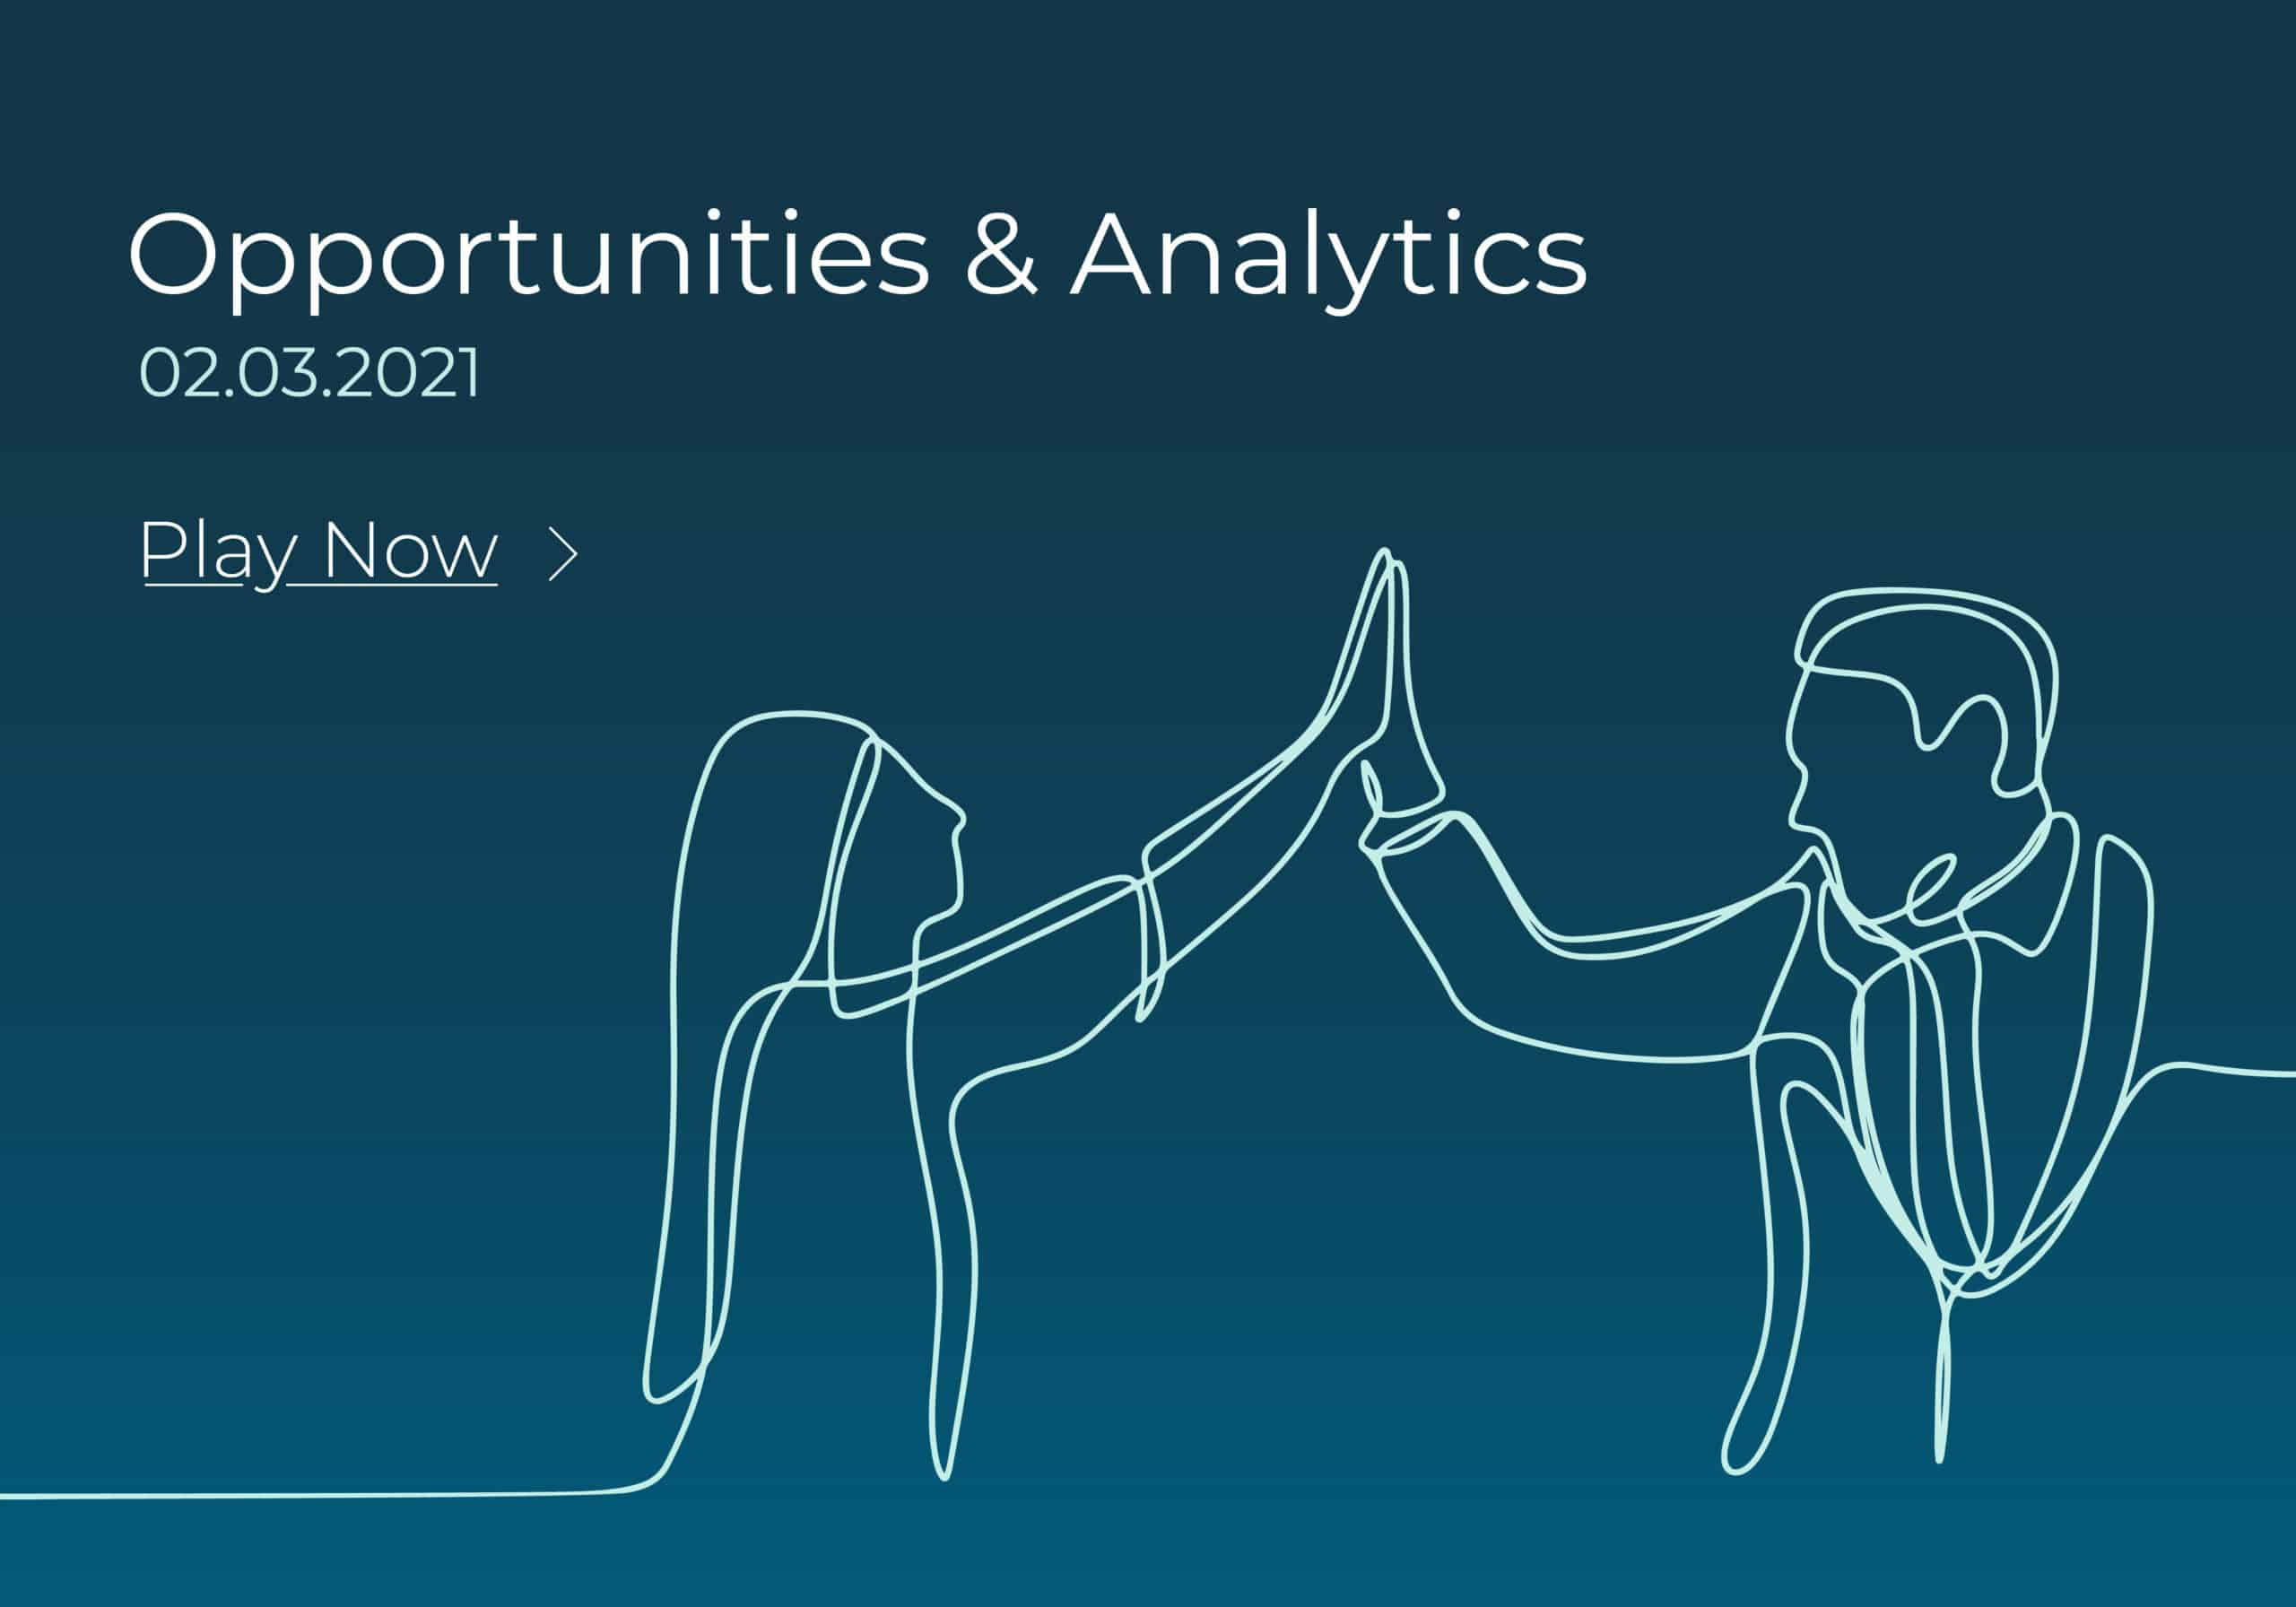 Opportunities & Analytics webinar recording, 2nd March 2021